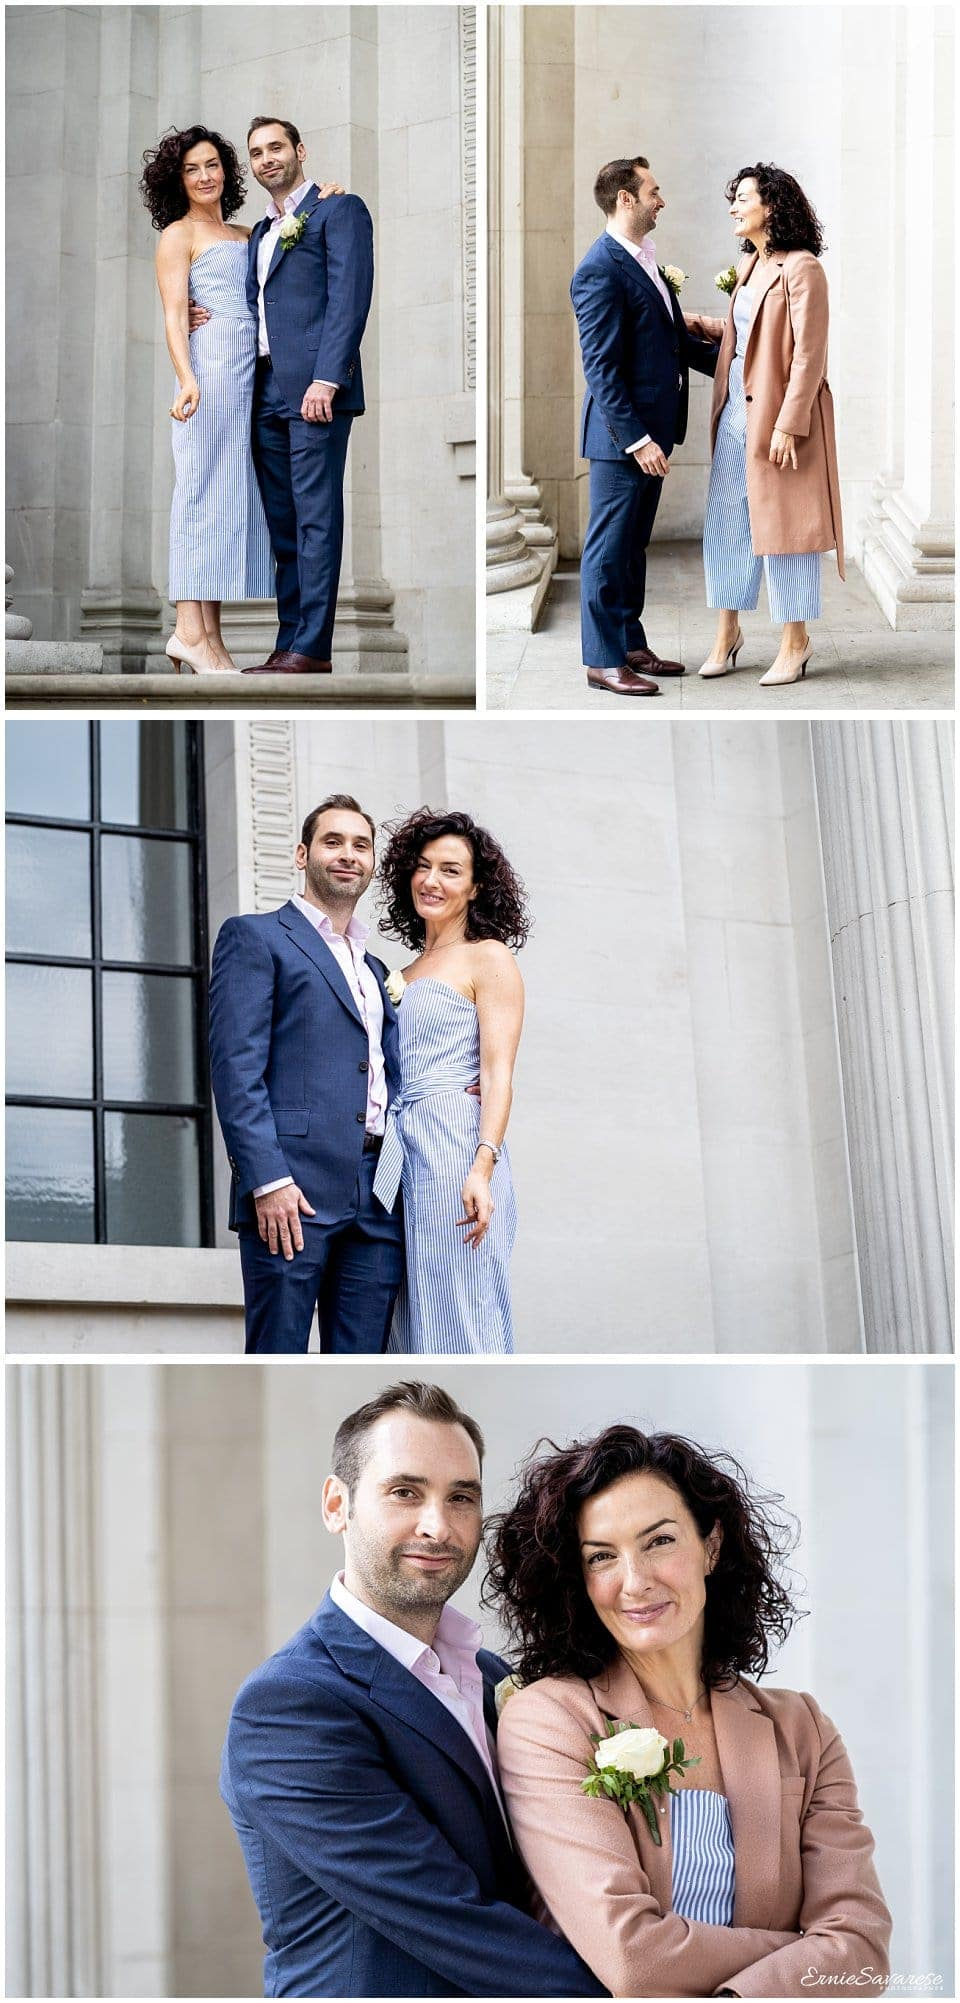 Old Marylebone Town Hall Register Wedding Photographer London